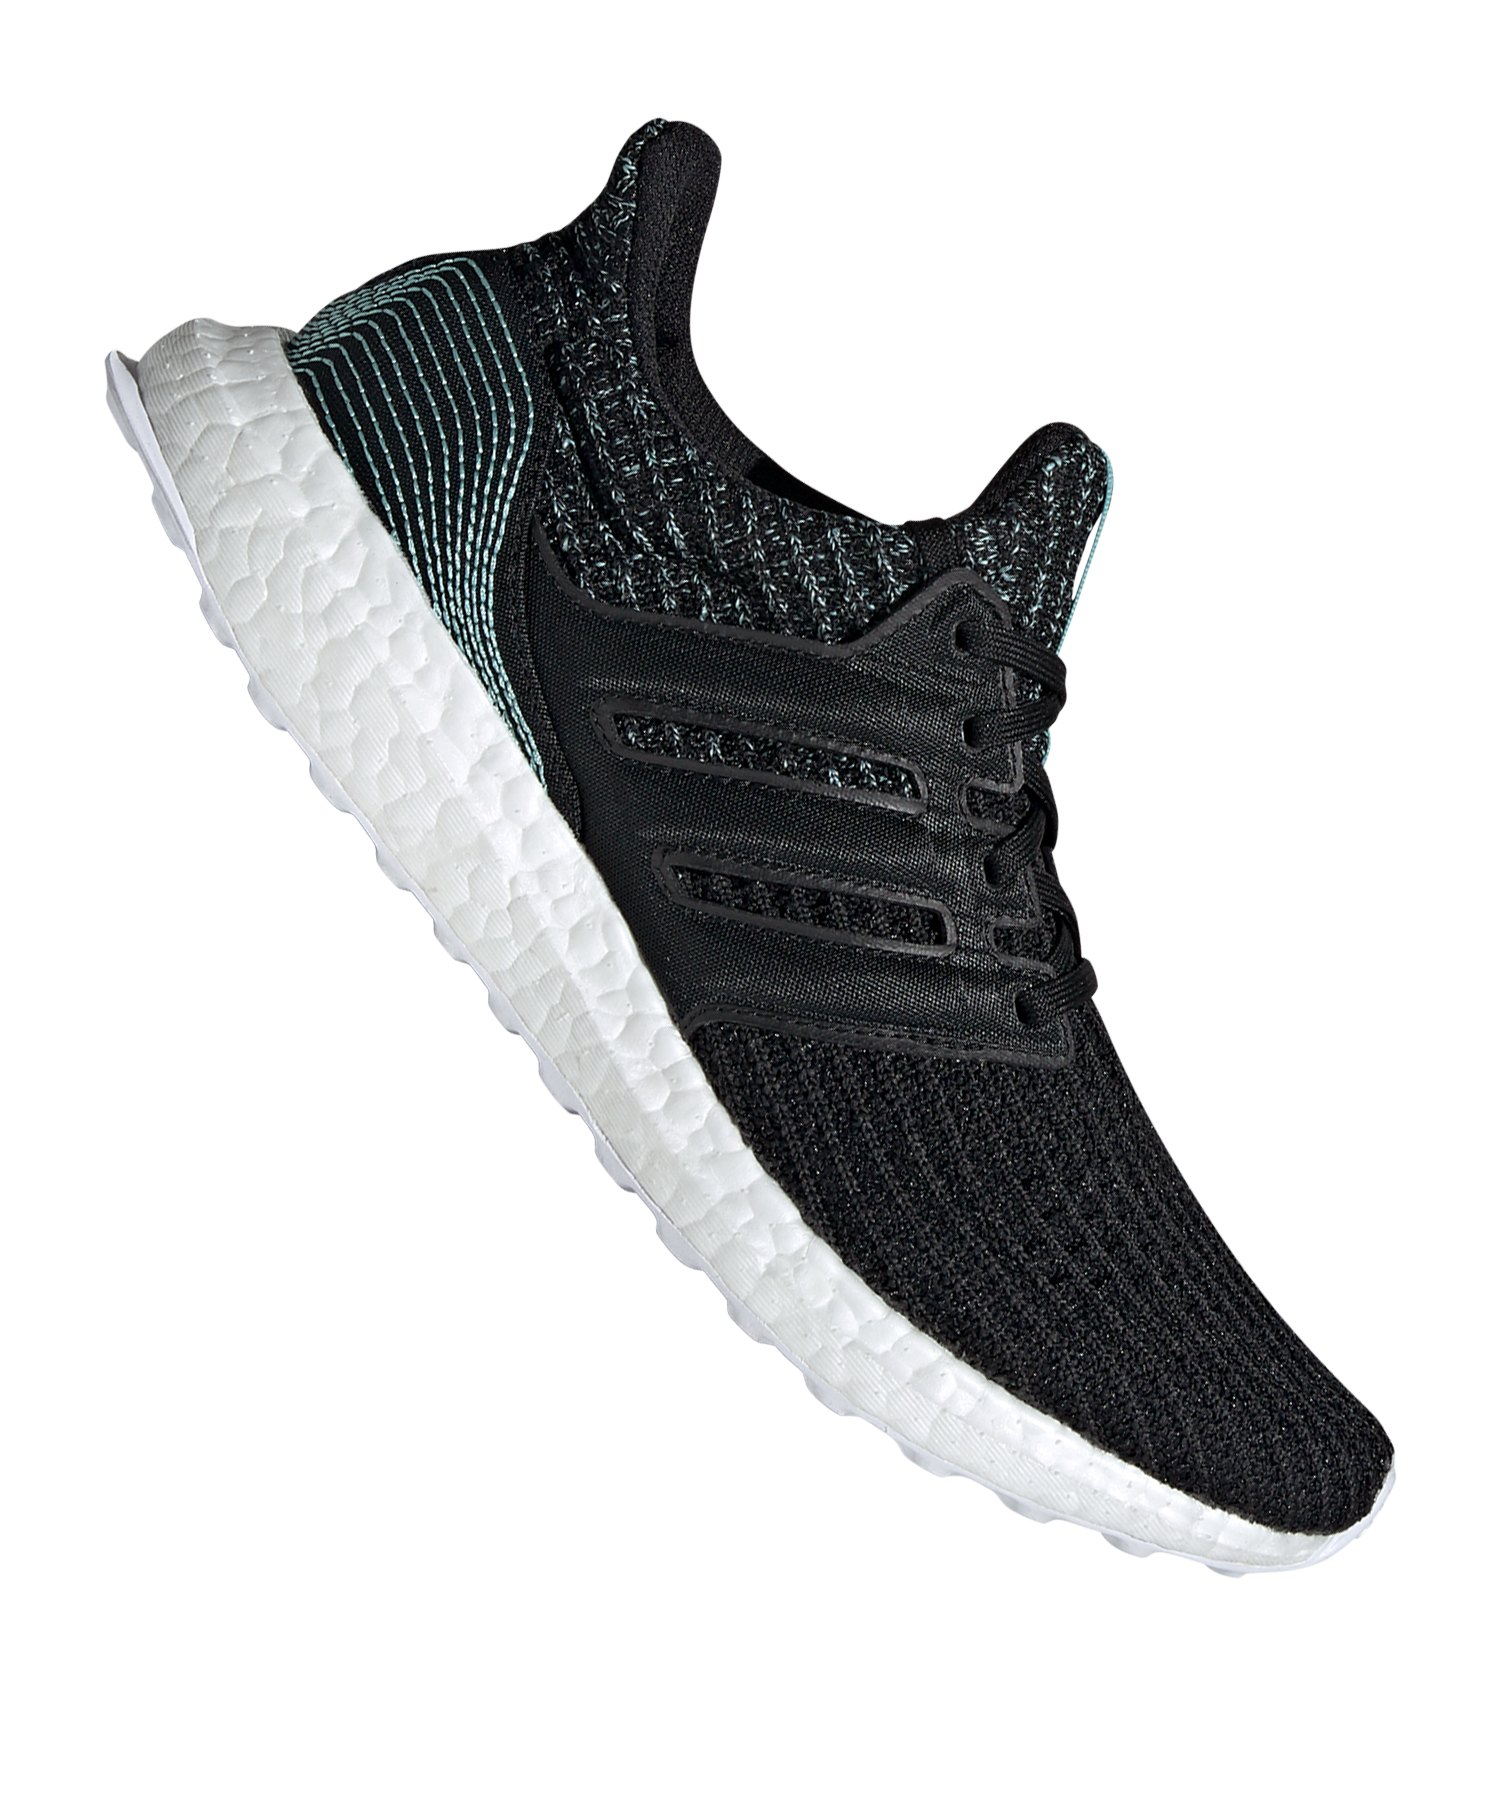 Adidas Women 's Ultra Boost Adidas Ultraboost Frauen' s